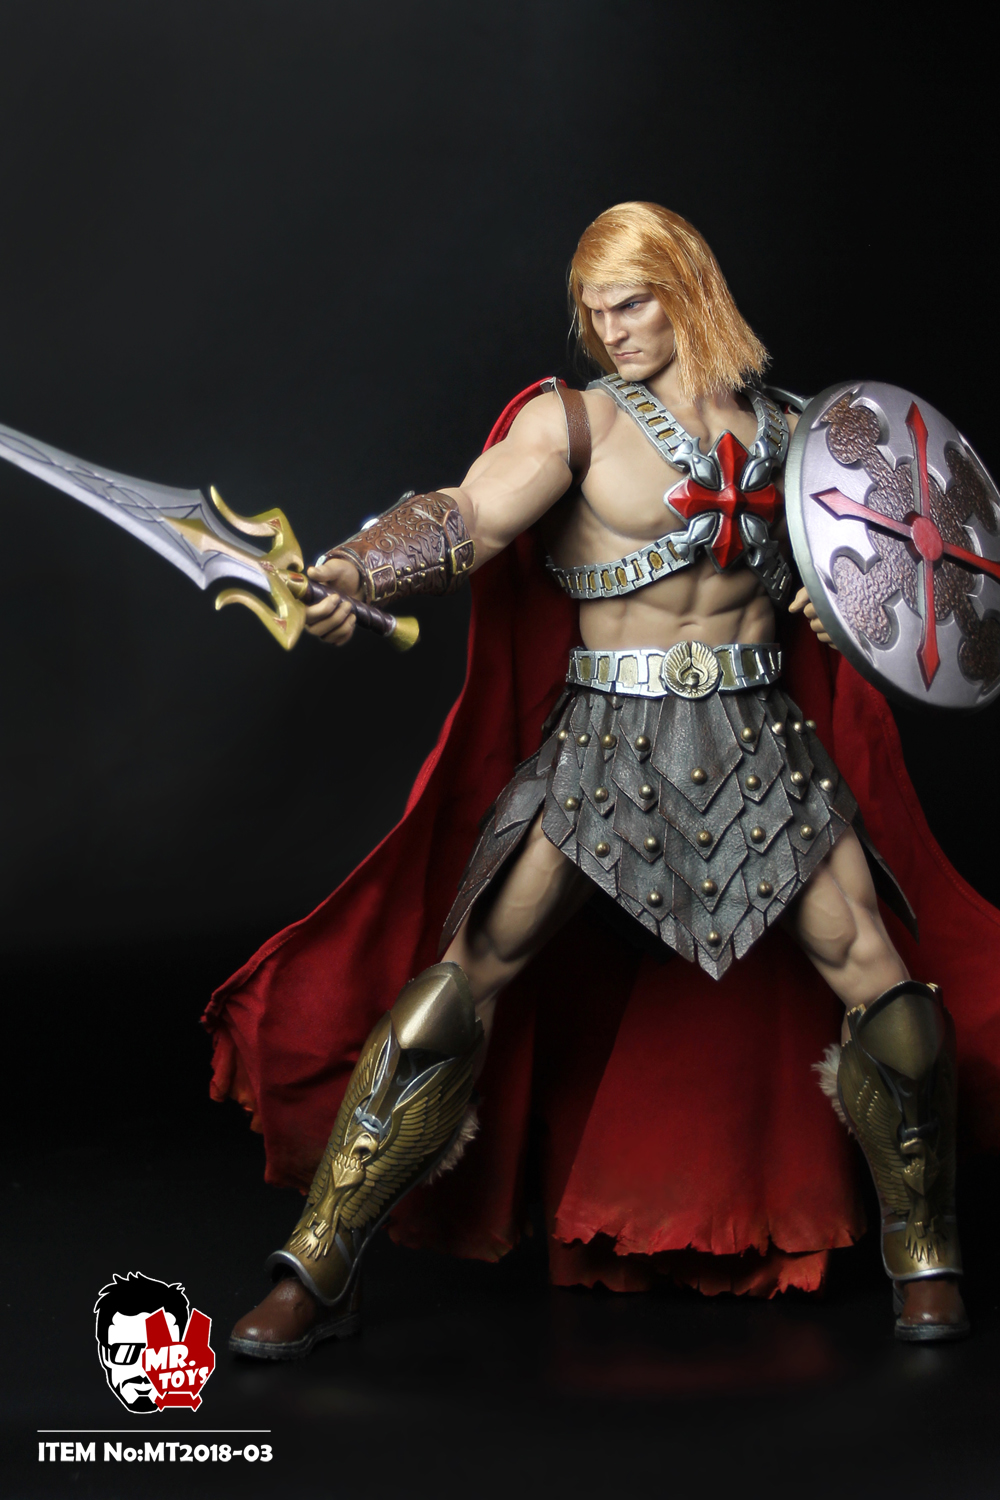 NEW PRODUCT: Mr. Toys MT2018-03 1/6 He-Man head carving costume set O1cn0126